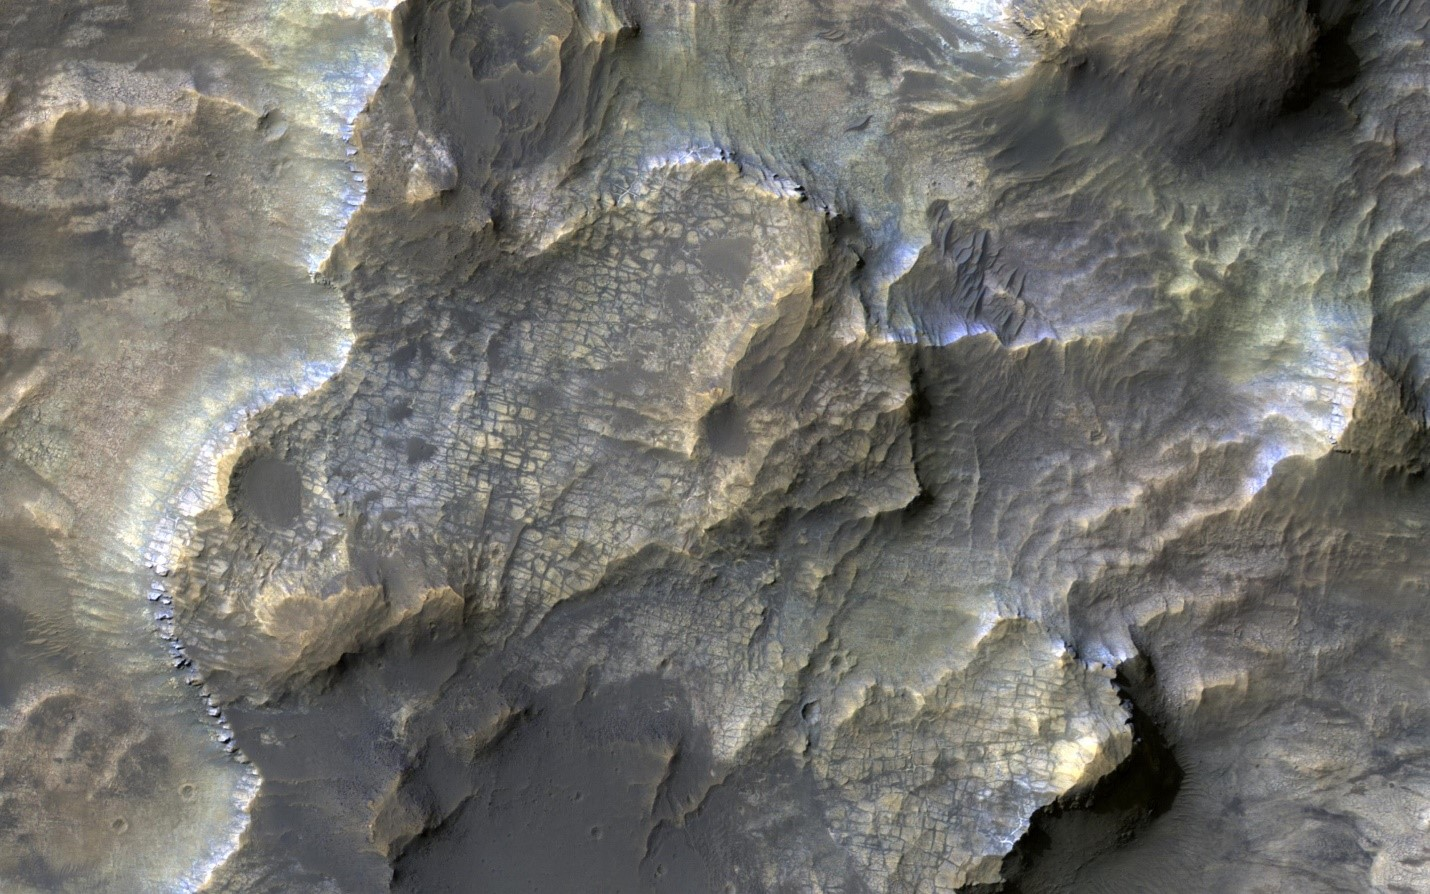 An image from the Mars Reconnaissance Orbiter showing the deep-water, hydrothermally altered clays found at the bottom of the Eridania basin.